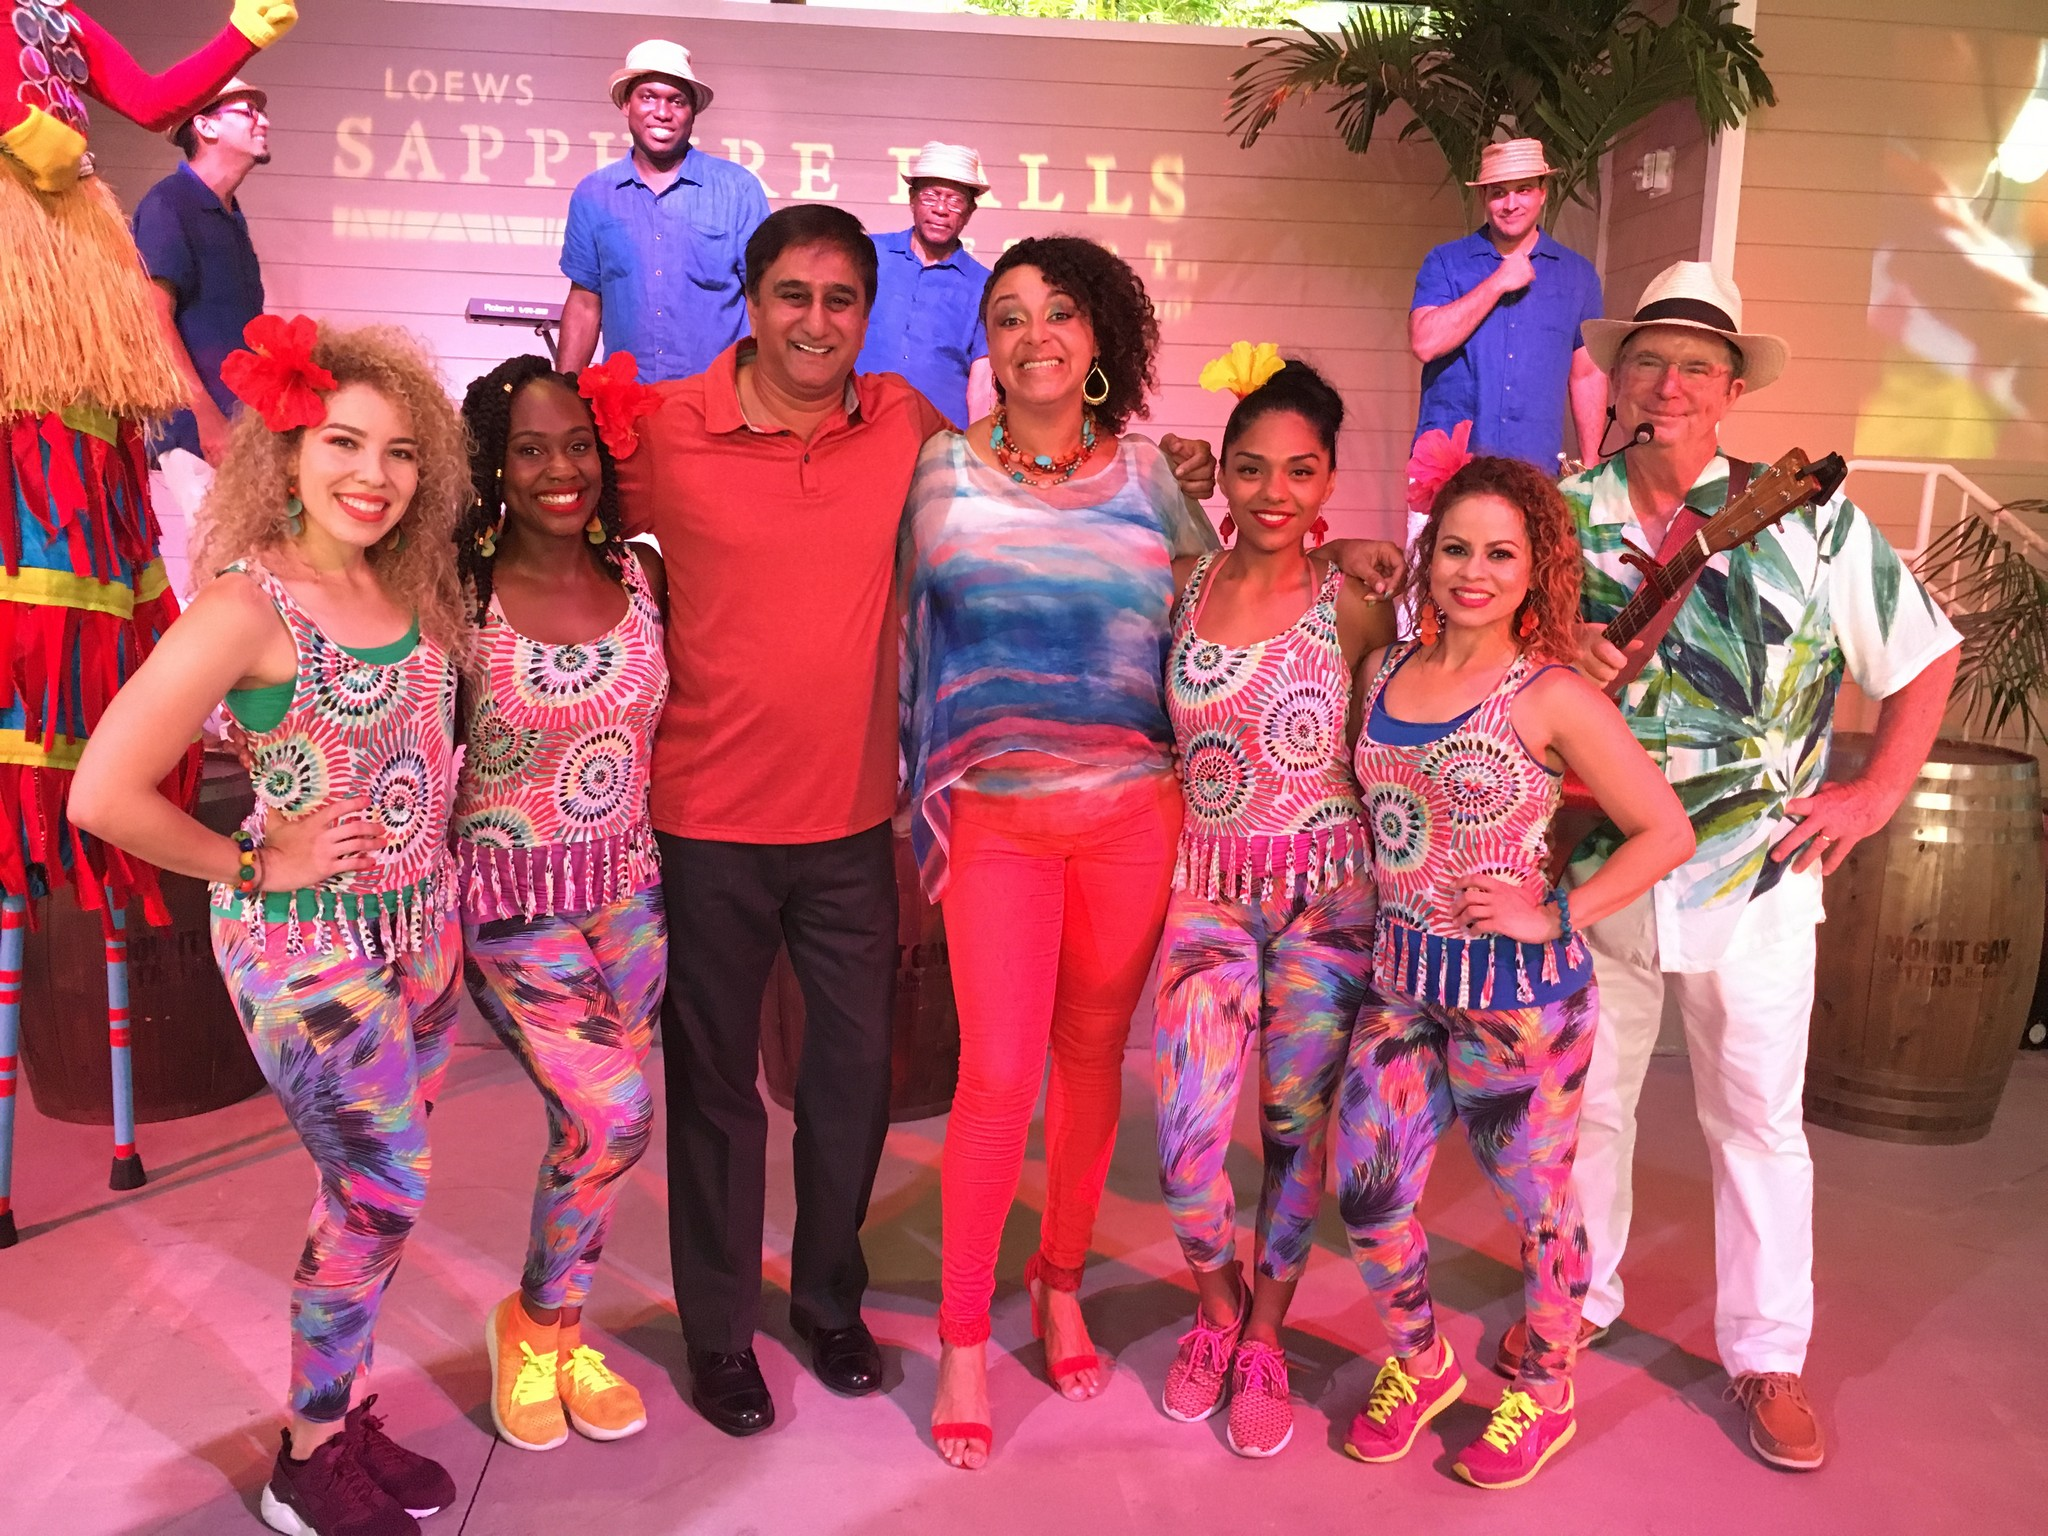 Caribbean Carnaval at Loews hotel